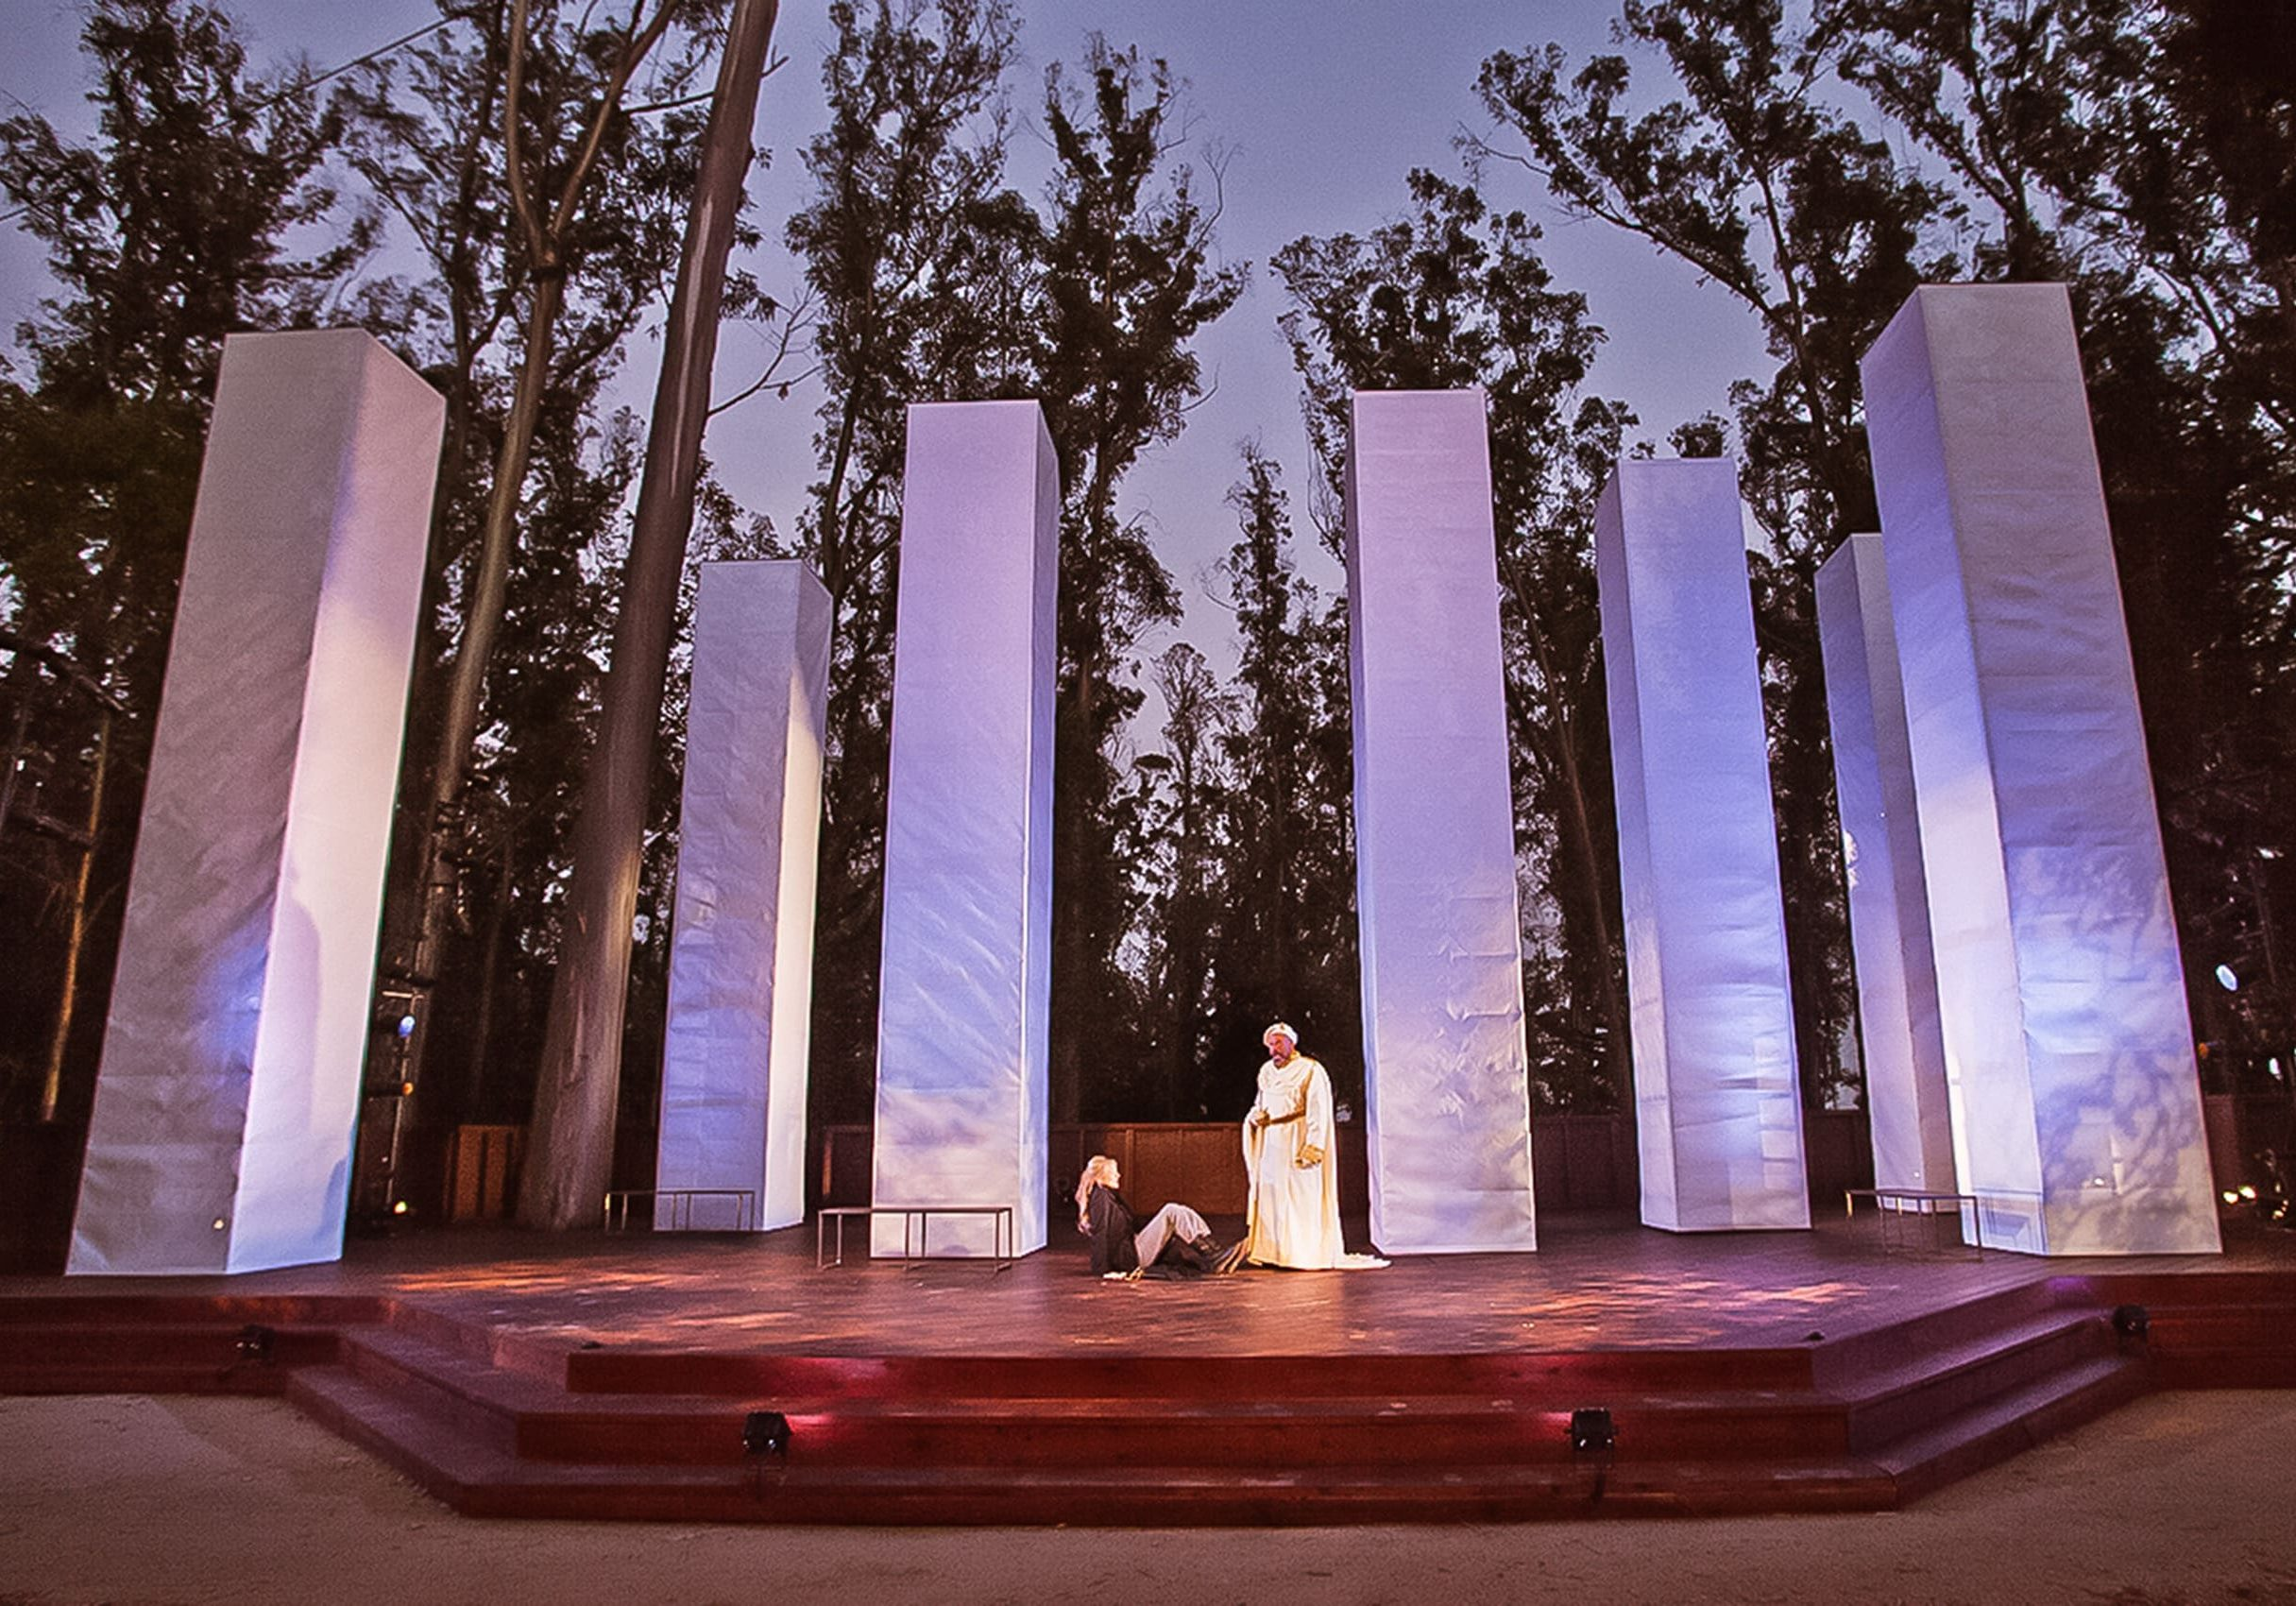 Santa Cruz Shakespeare is a nationally recognized theatre company delivering riveting live performances under a breathtaking outdoor Eucalyptus Grove.